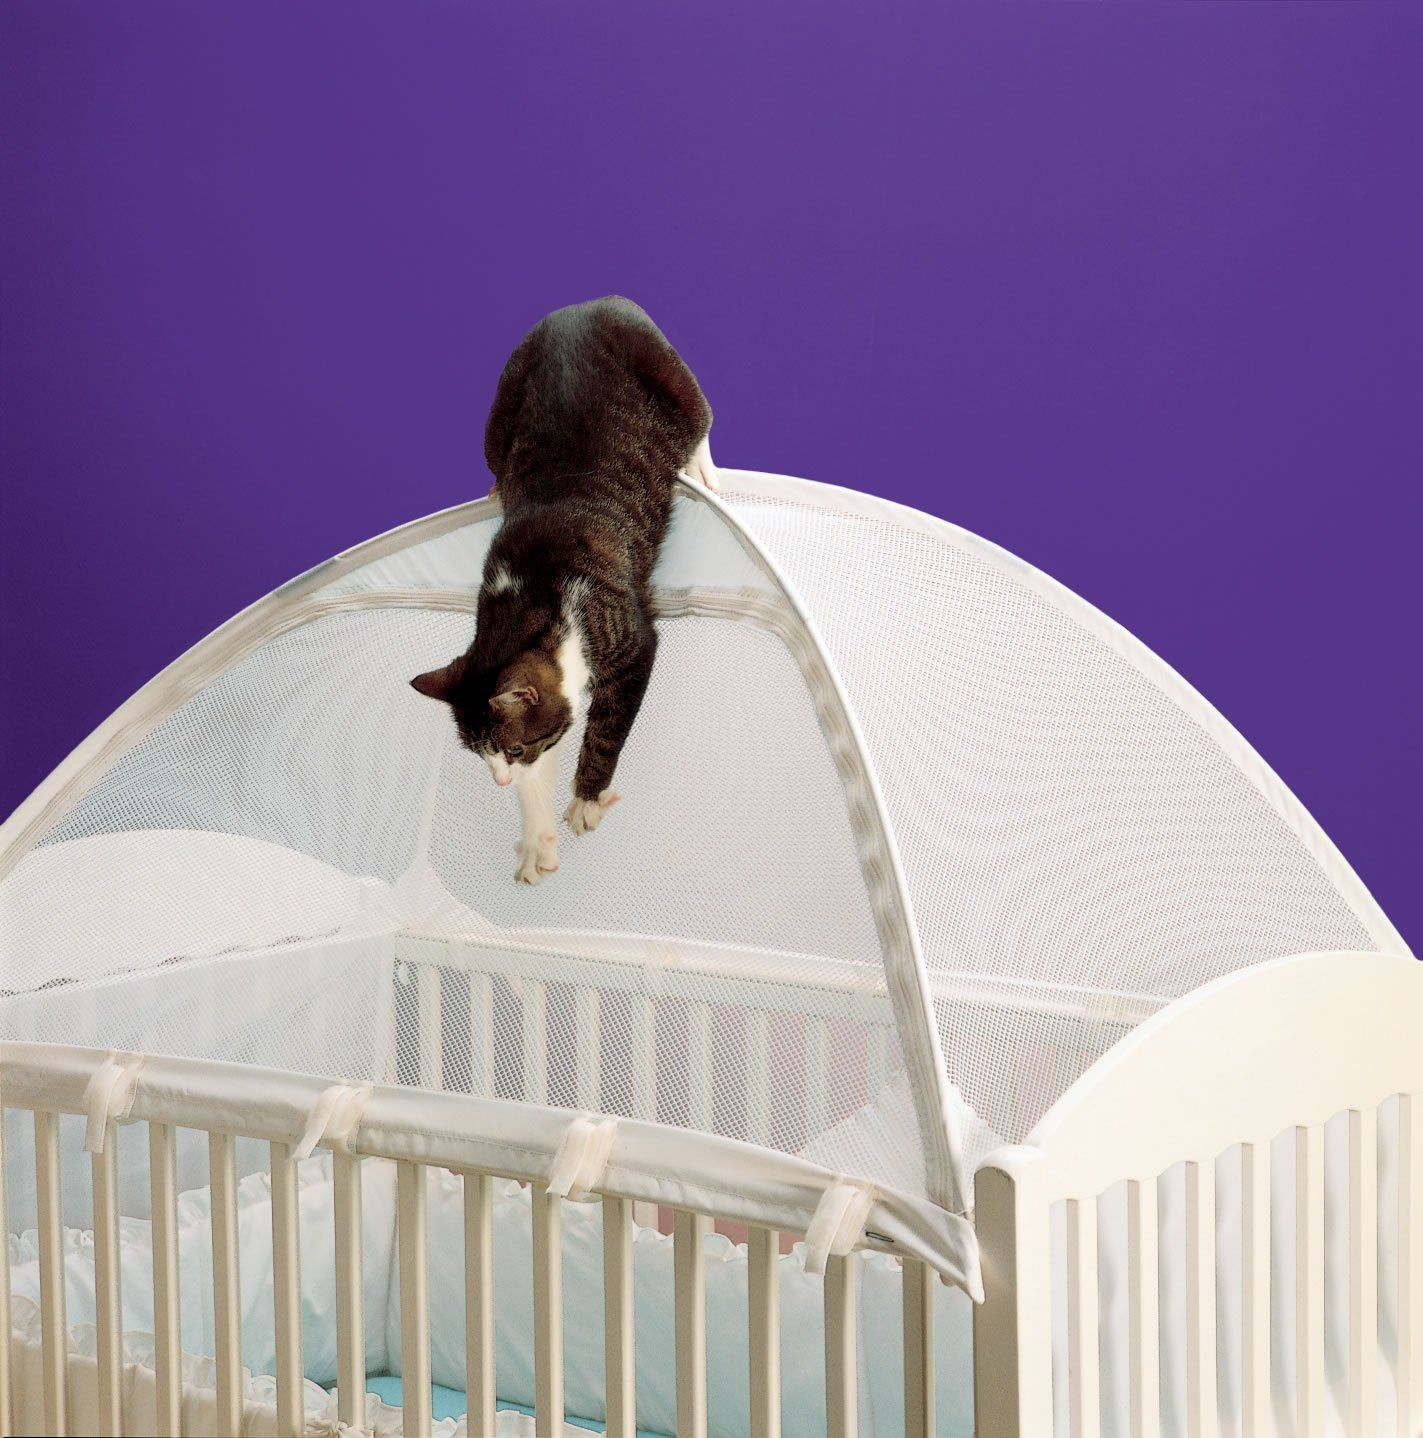 21 Inane Baby Products For Questionable Parents. A Crib Tent.So the cat doesnu0027t eat your baby. & might be a good idea with Marble! Google Image Result for http ...